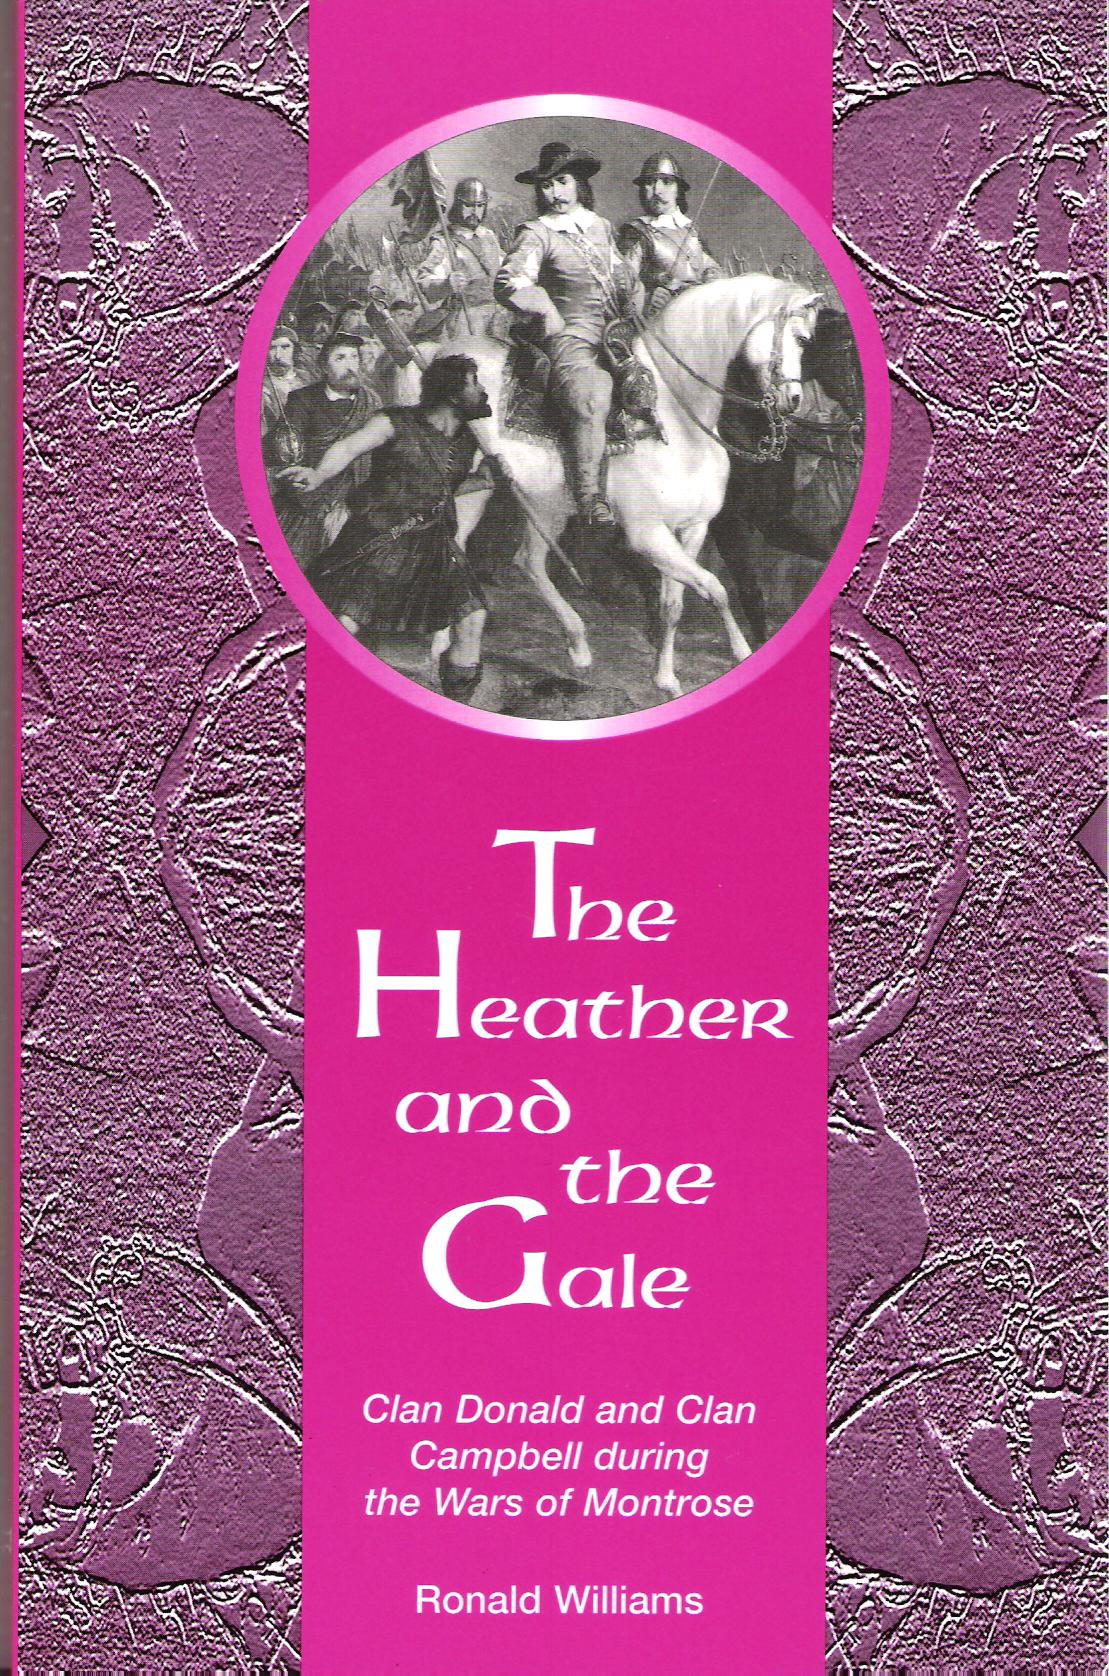 Image for The Heather and the Gale: Clan Donald and Clan Campbell During the Wars of Montrose.